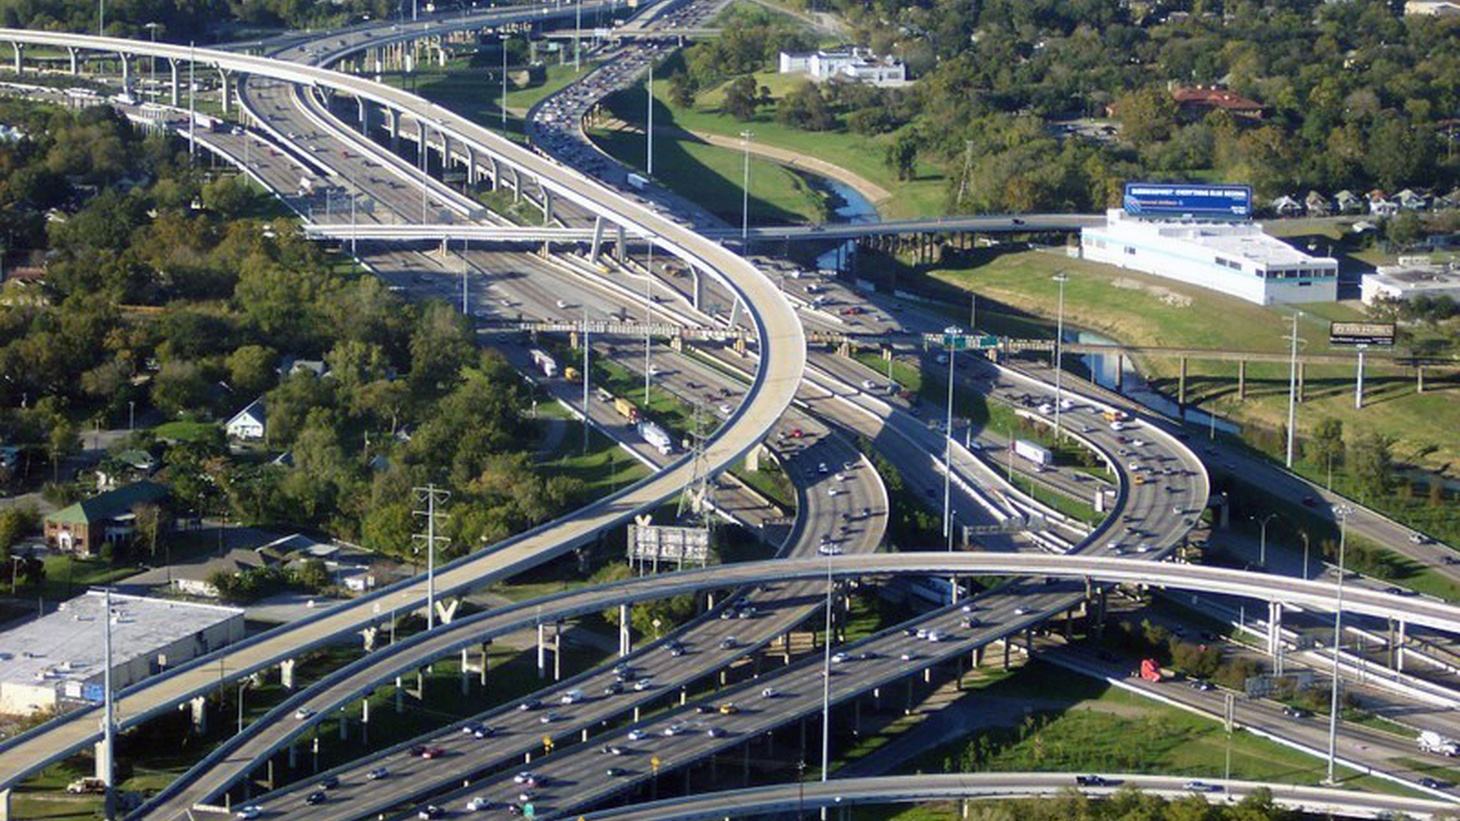 With America's transportation system on the verge of collapse, the Highway Trust Fund is about run out of money. Even if Congress passes a short-term fix, what are the consequences of falling behind for competition in the global economy?